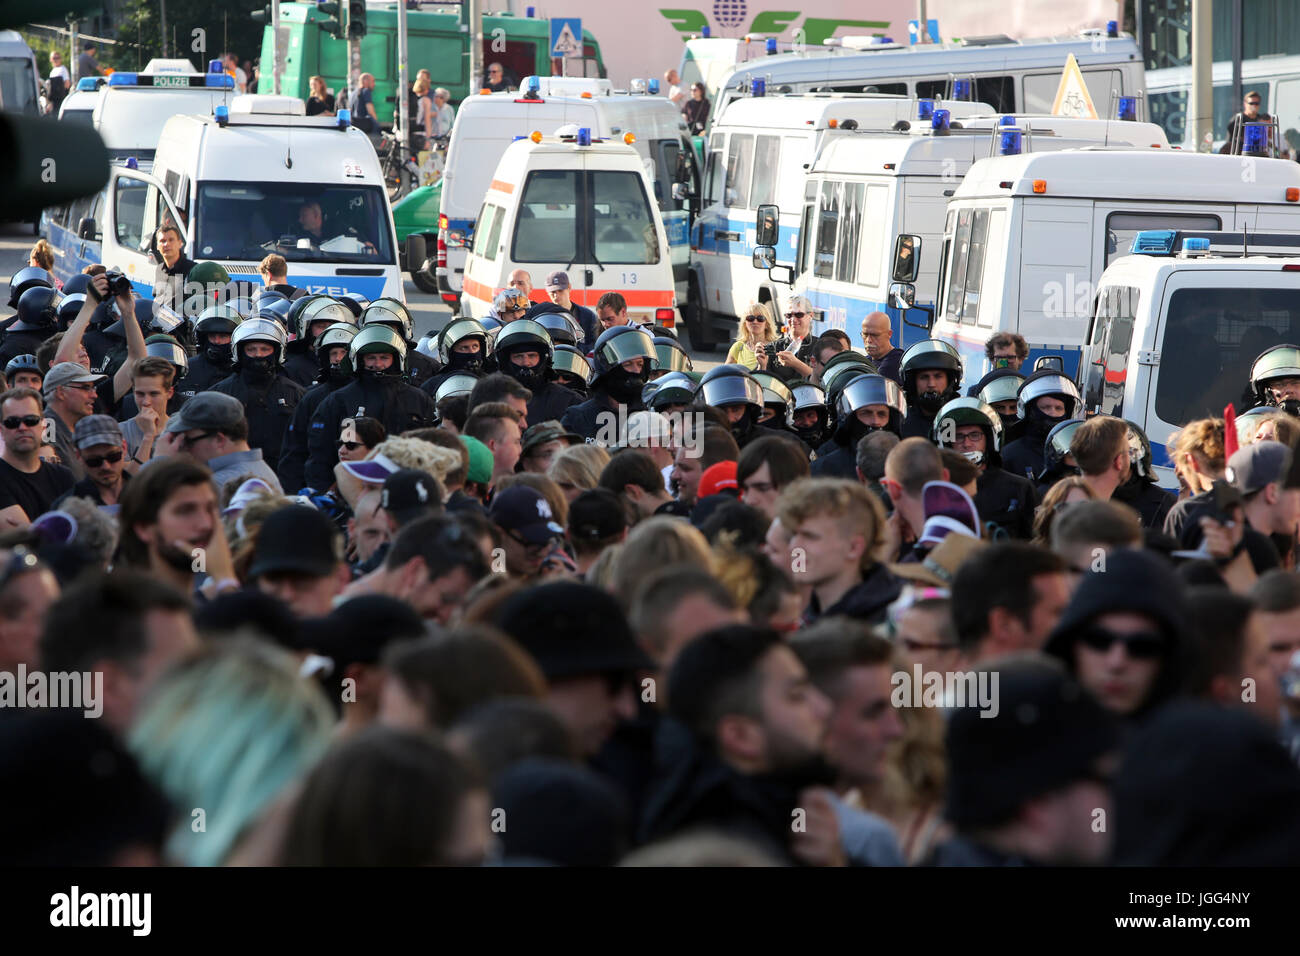 Hamburg, Germany. 6th July, 2017. Demonstrators march through the streets of Hamburg in protest of the G20 summit, Stock Photo